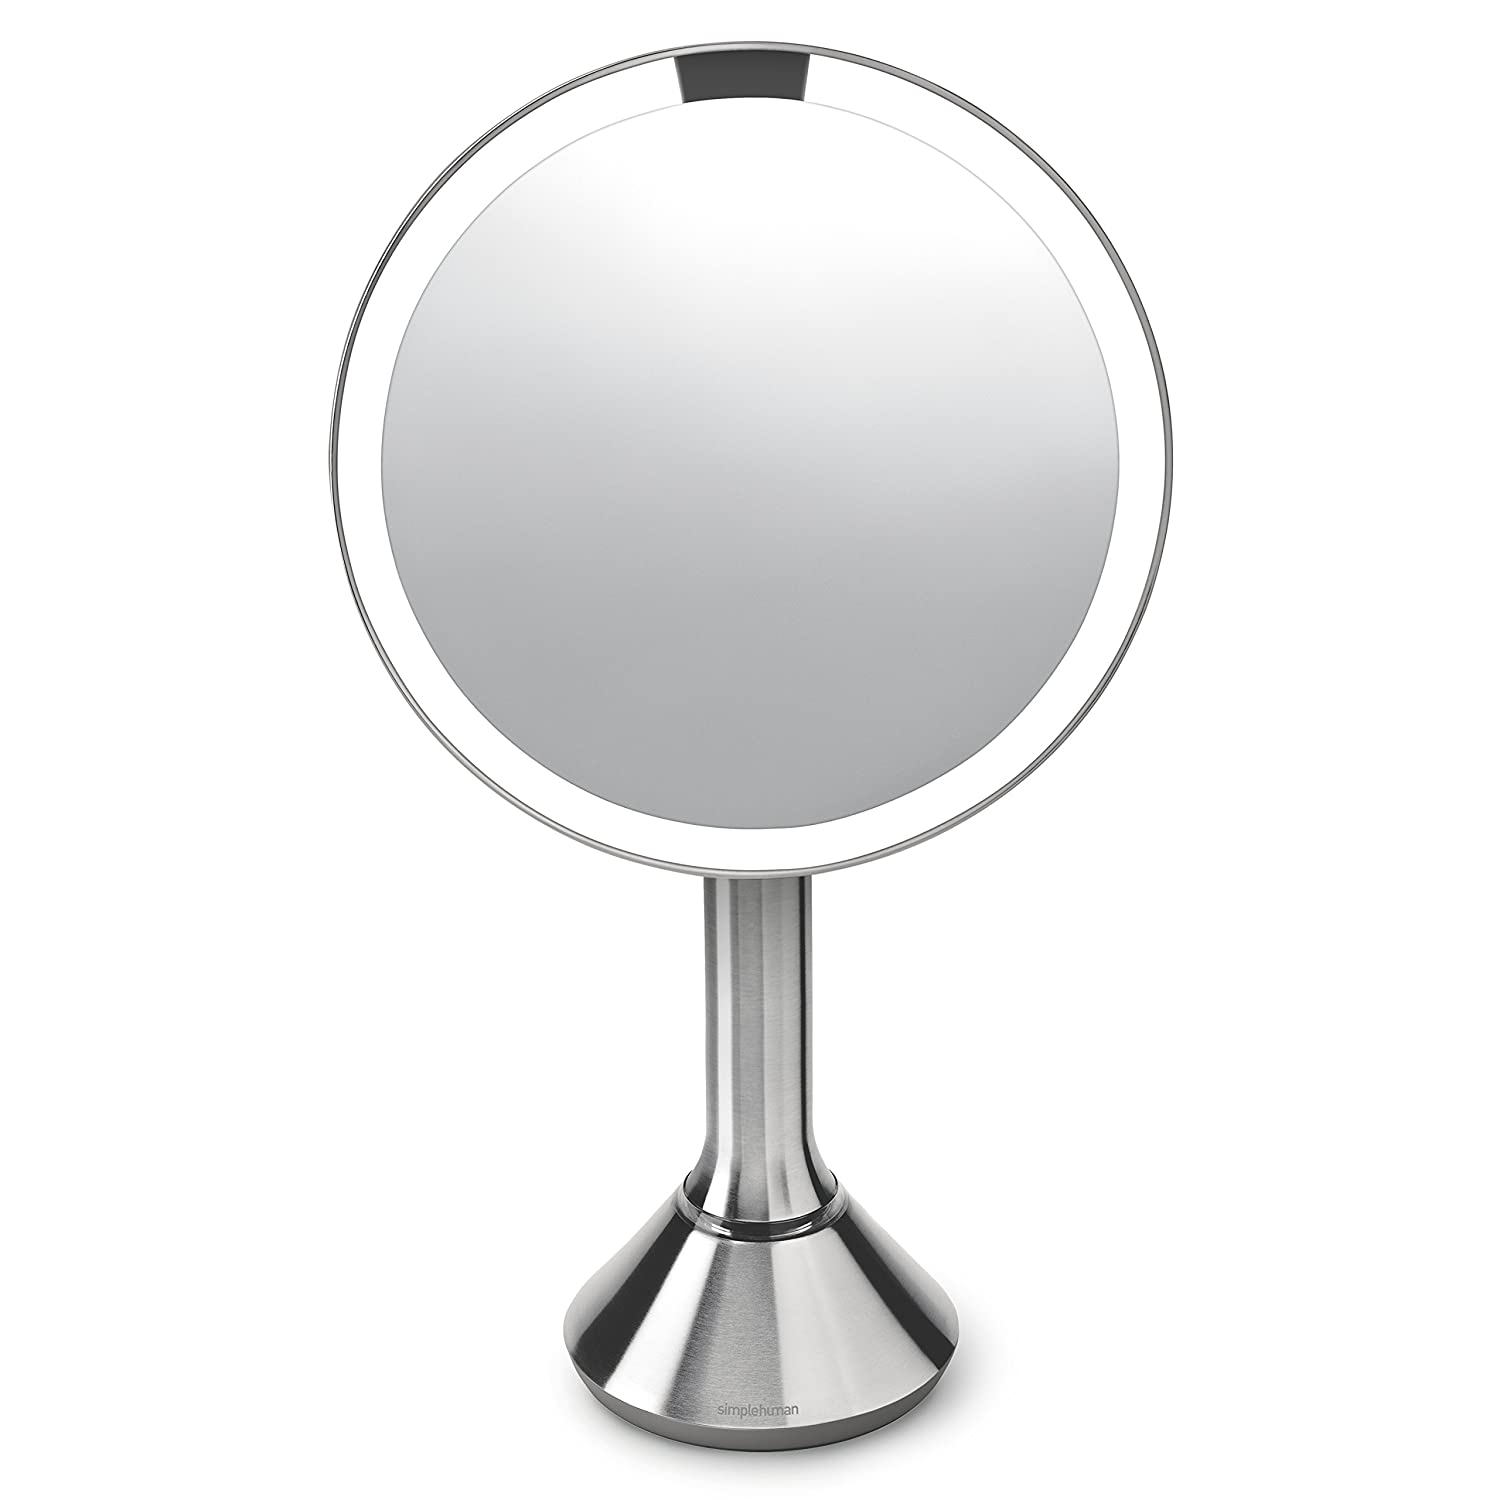 "simplehuman Sensor Lighted Makeup Vanity Mirror, 8"" Round with Touch-Control Brightness, 5X Magnification, Brushed Stainless Steel, Rechargeable and Cordless"